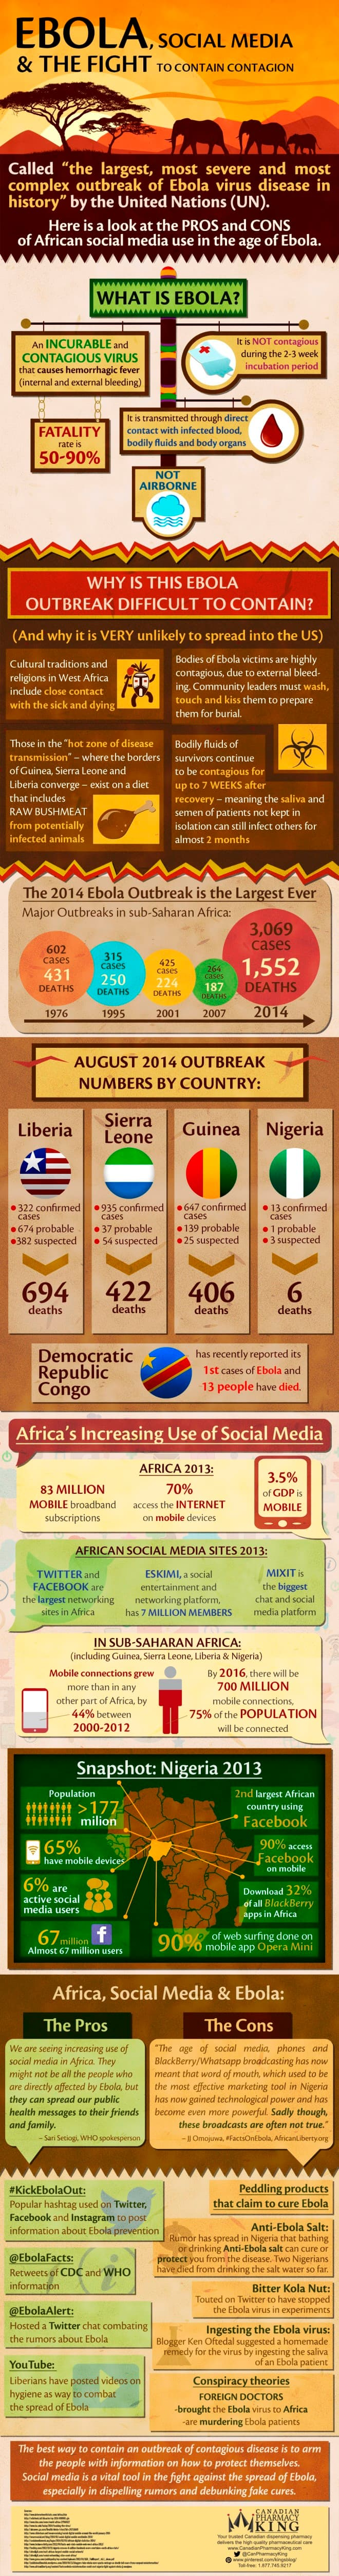 Infographic Ebola, Social Media & The Fight To Contain Contagion